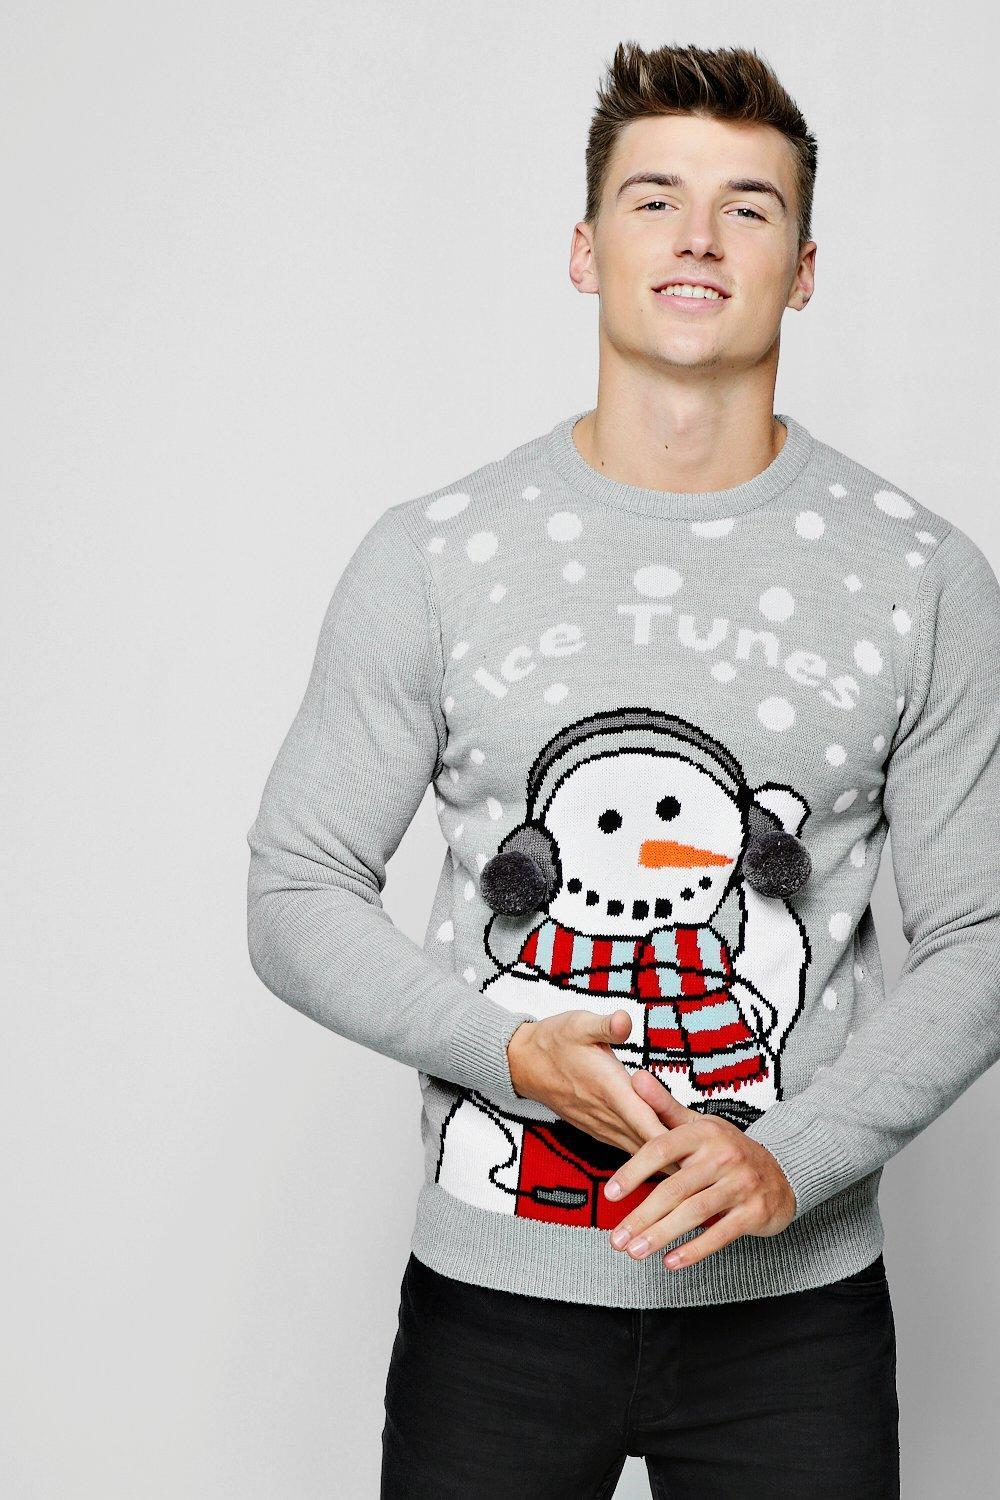 726d4dbd944 Boohoo Ice Tunes Christmas Sweater in Gray for Men - Lyst